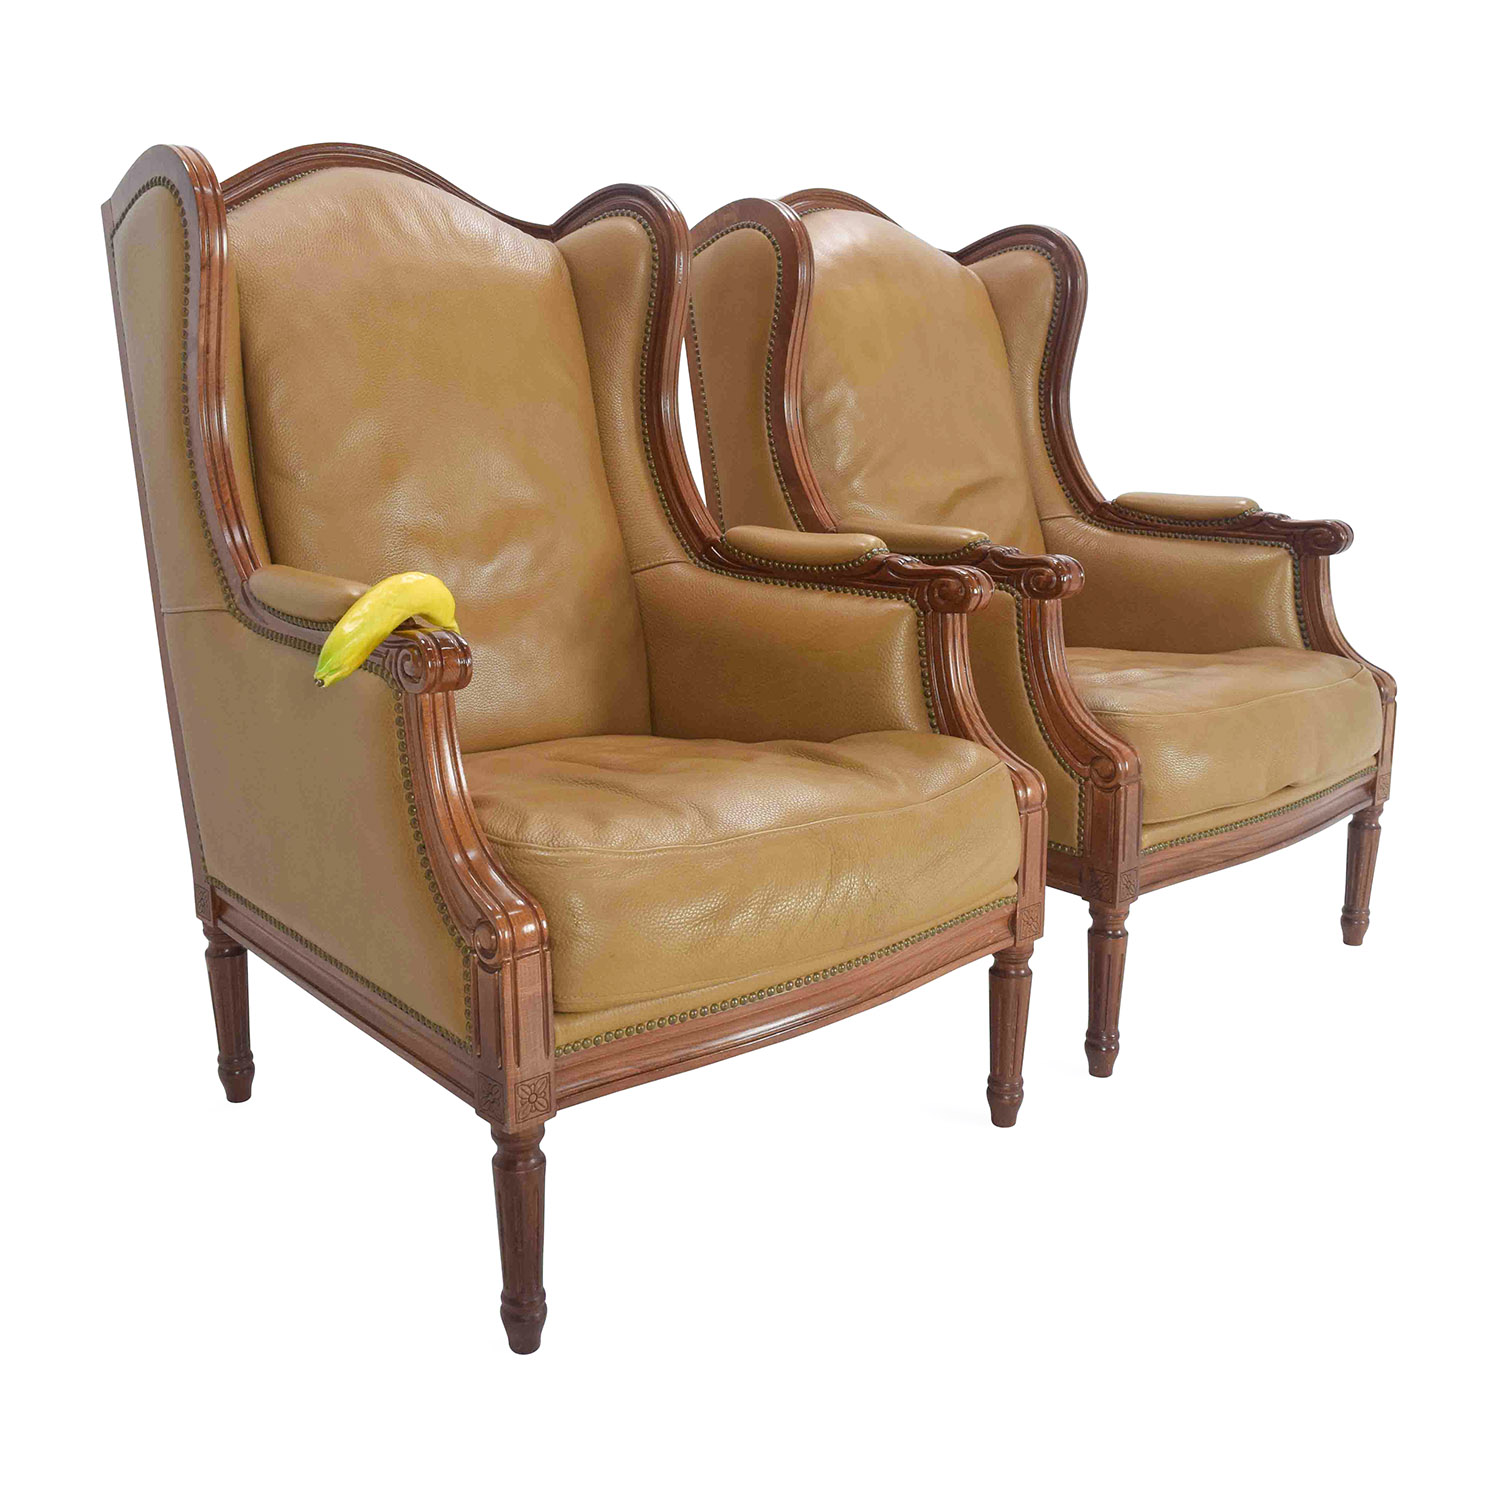 leather recliners antique 62 antique antique leather chairs chairs 3700